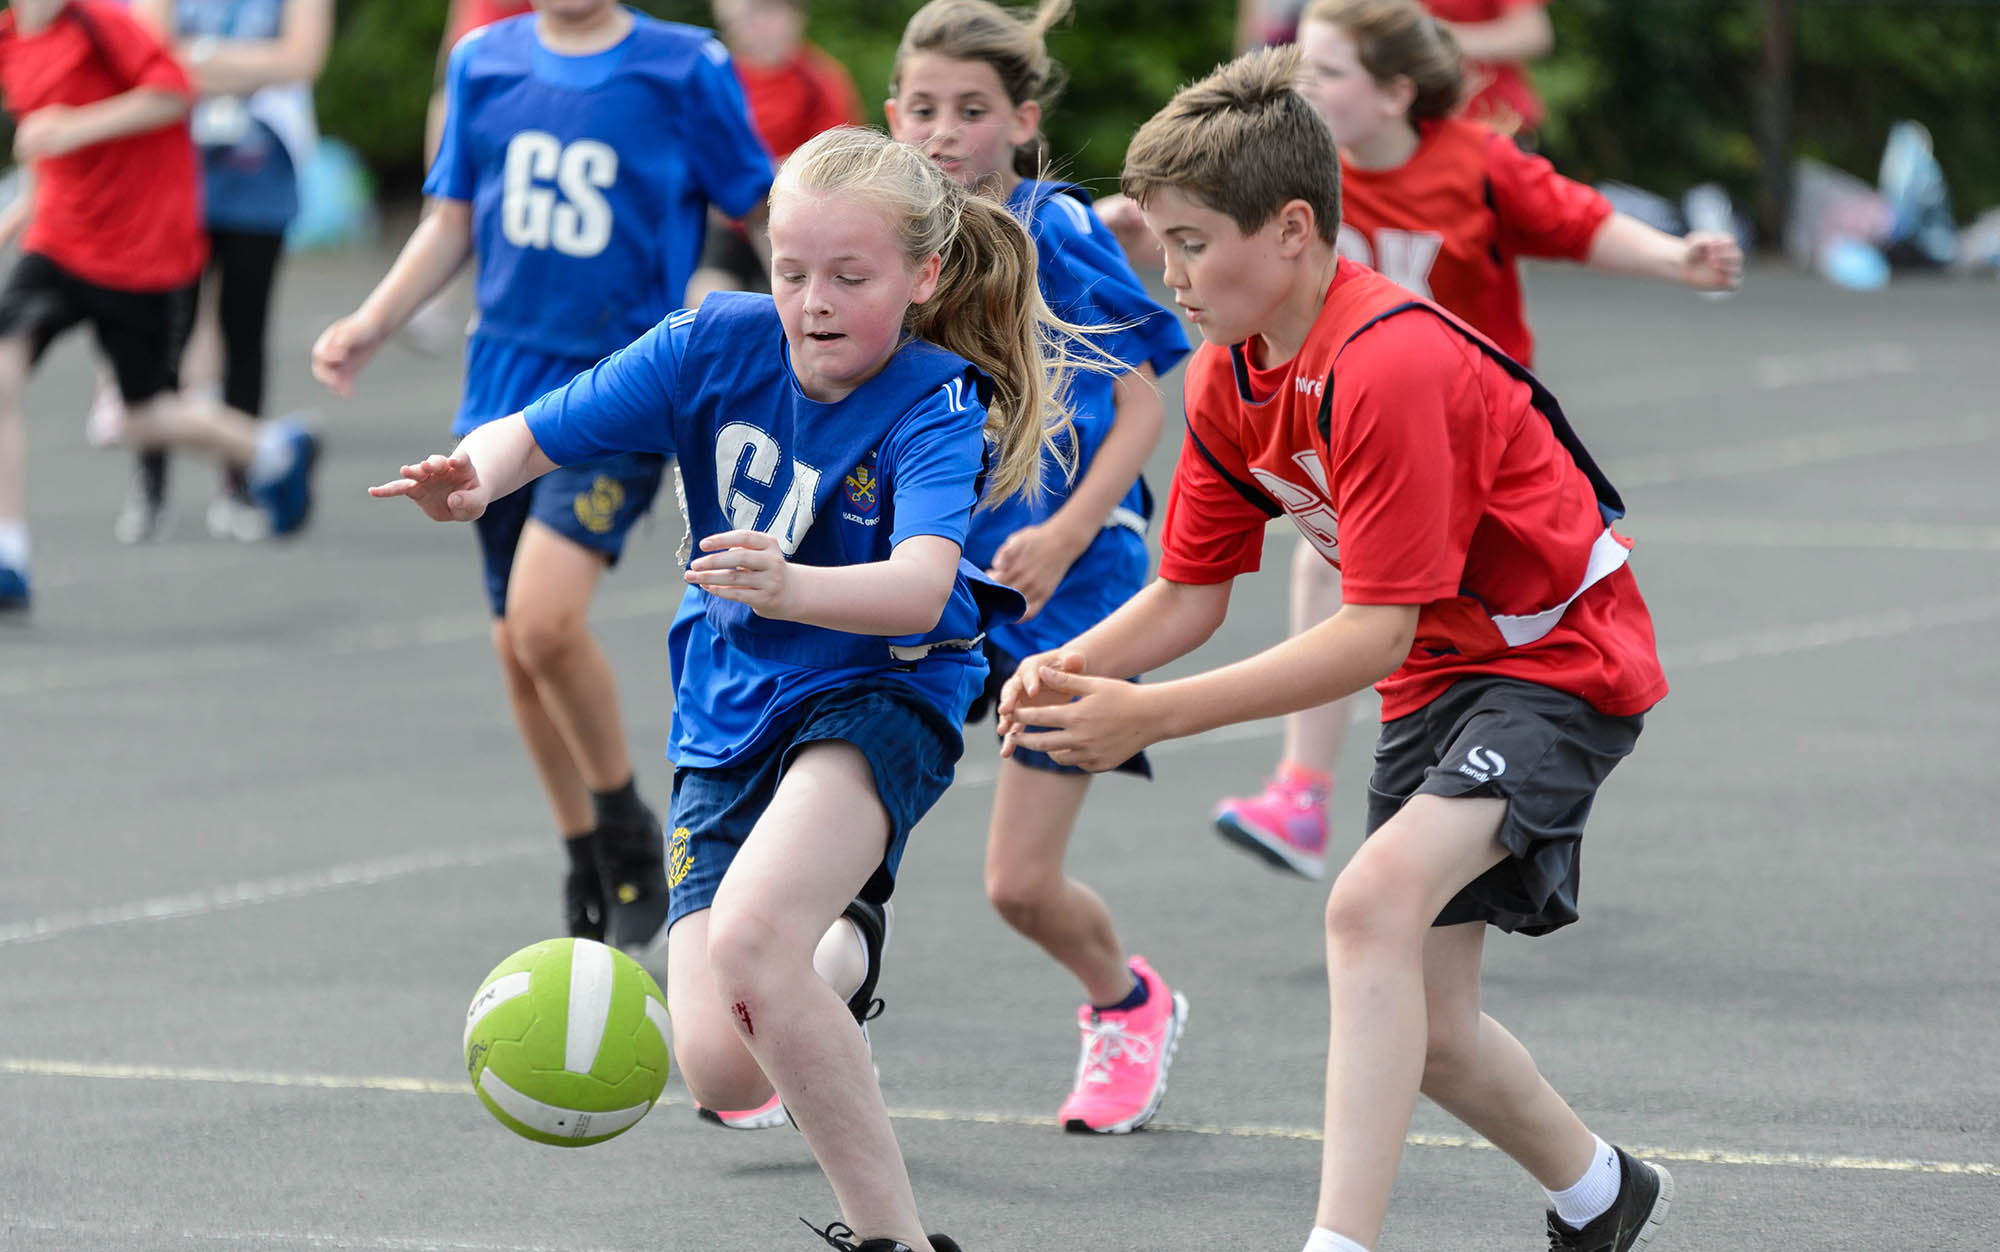 boy and girl chasing after the ball playing netball